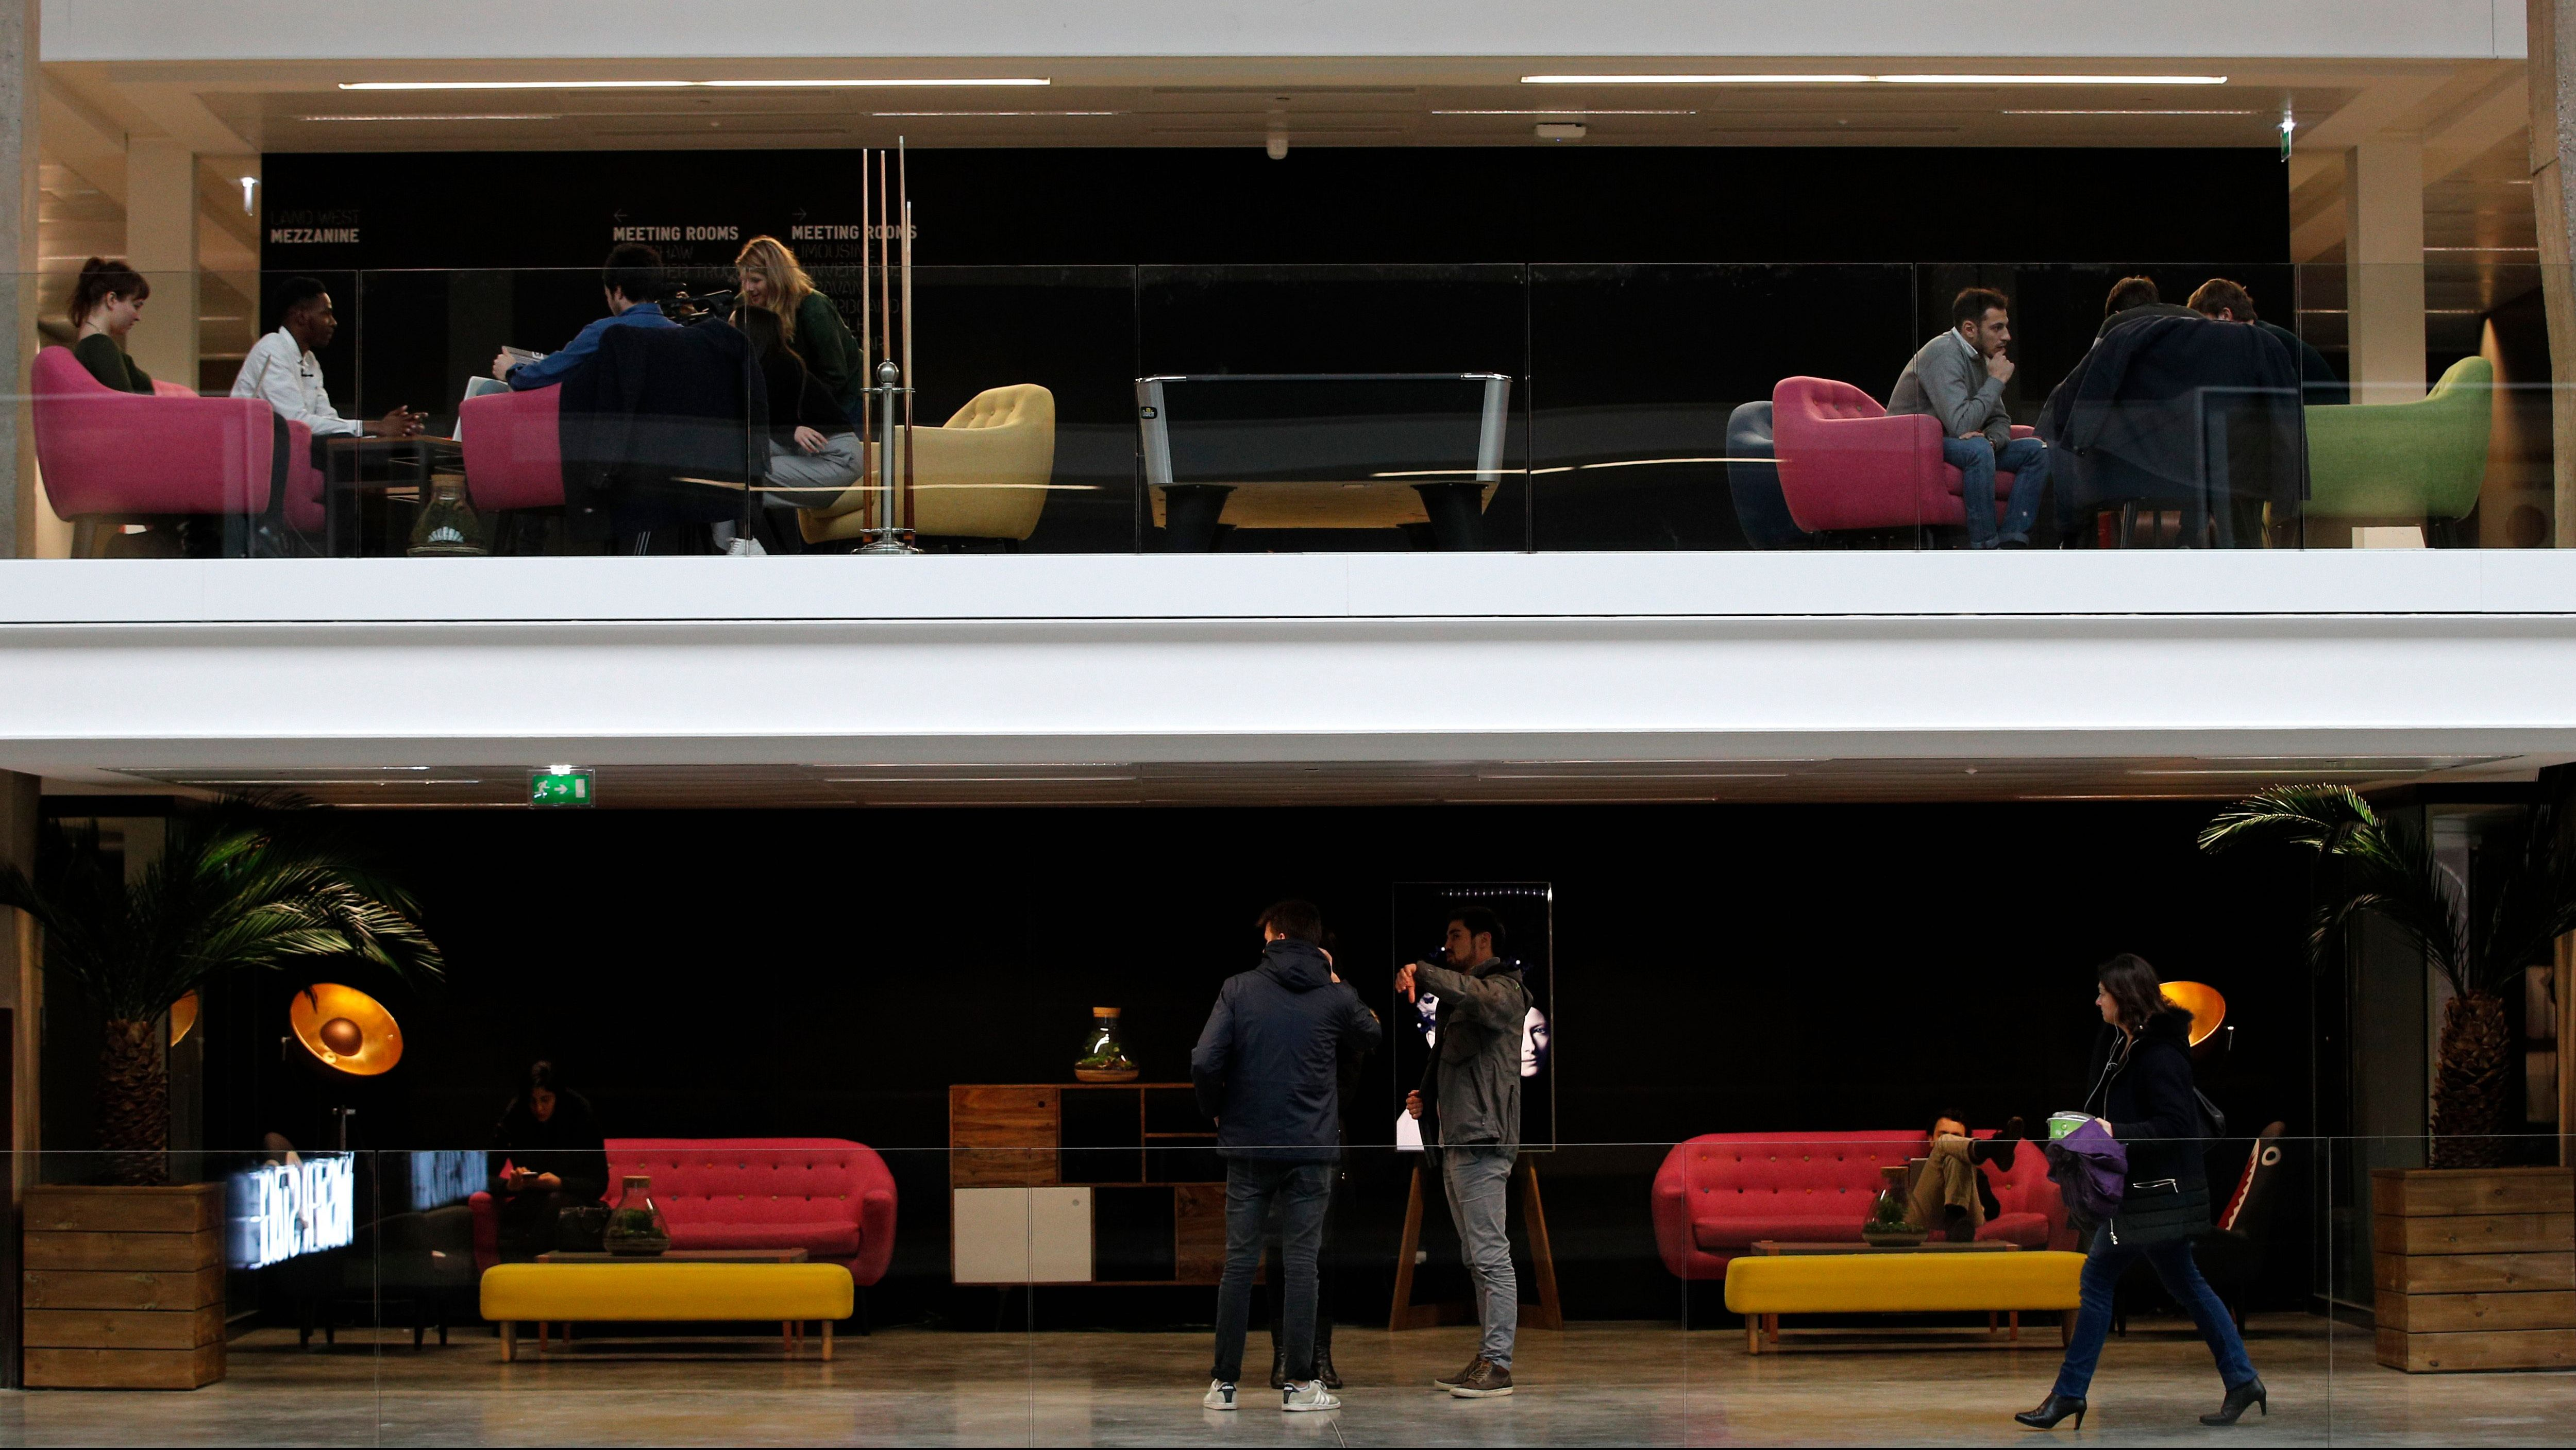 People attend meetings at the world's biggest start-up incubator Station F, in Paris, Wednesday, Jan. 31, 2018. For a glimpse at President Emmanuel Macron's vision for the new French economy, look no farther than Station F. Entrepreneurs don virtual reality goggles and share ideas with business angels in this old Paris train station-turned-startup incubator. (AP Photo/Christophe Ena)